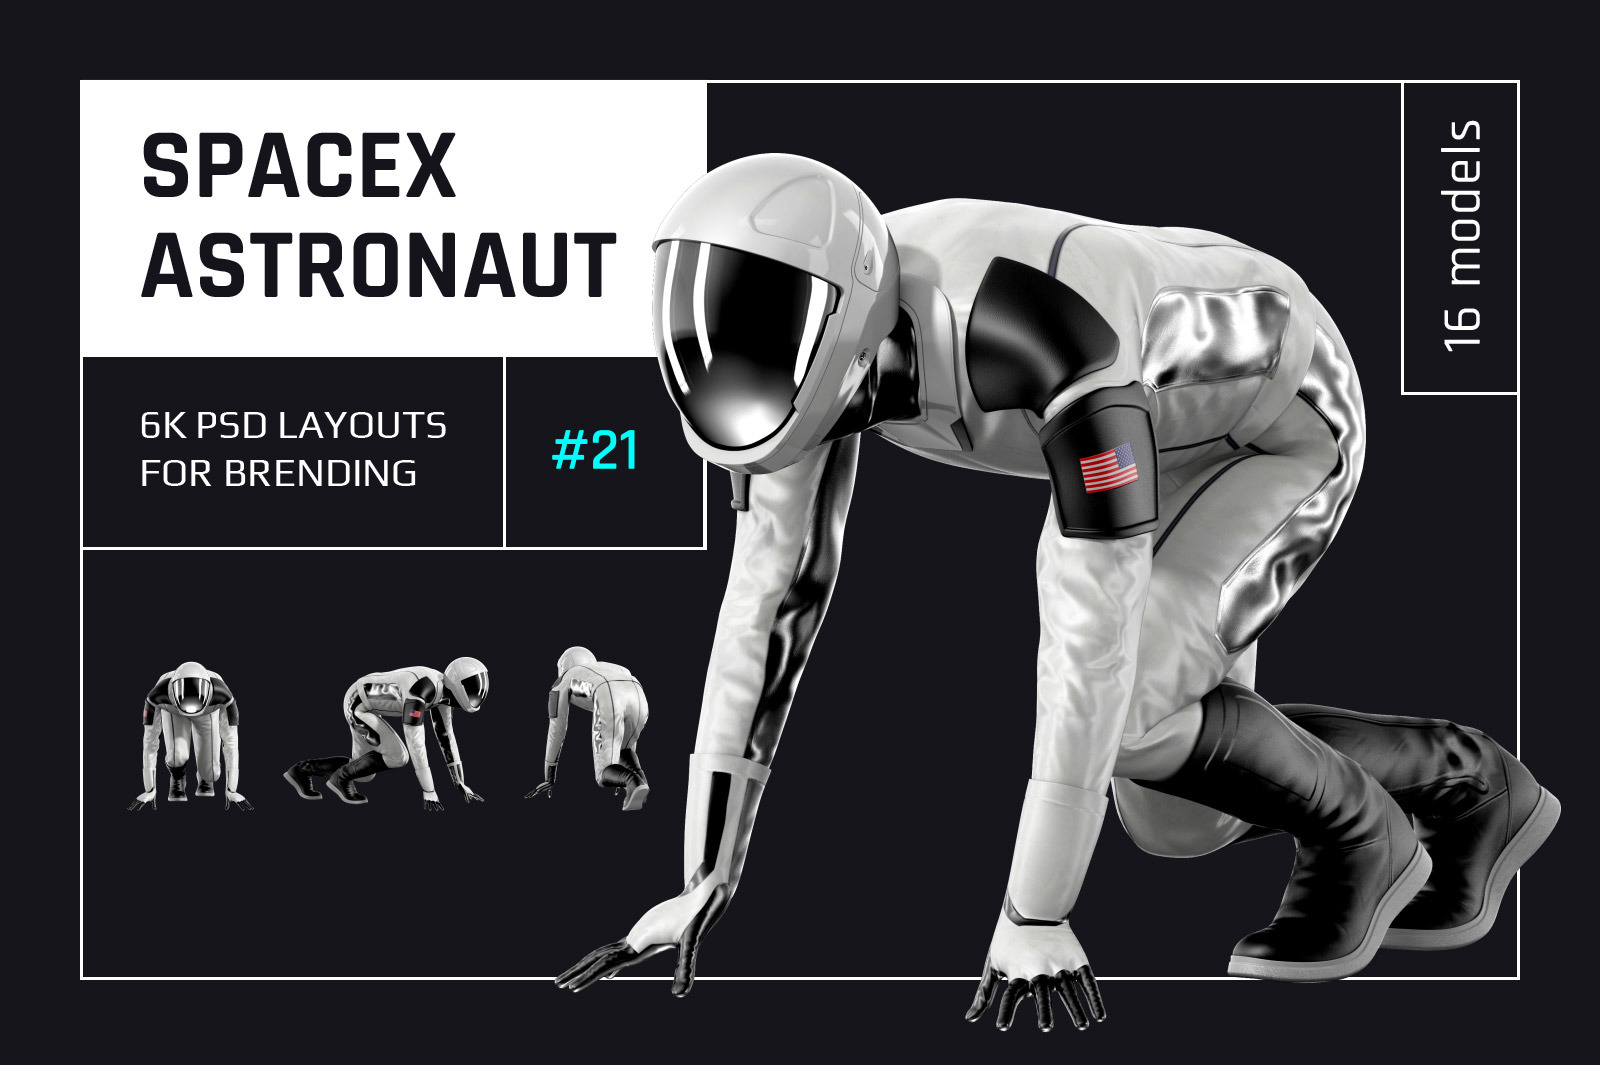 PSD Mockup 3D model SpaceX Astronaut #21